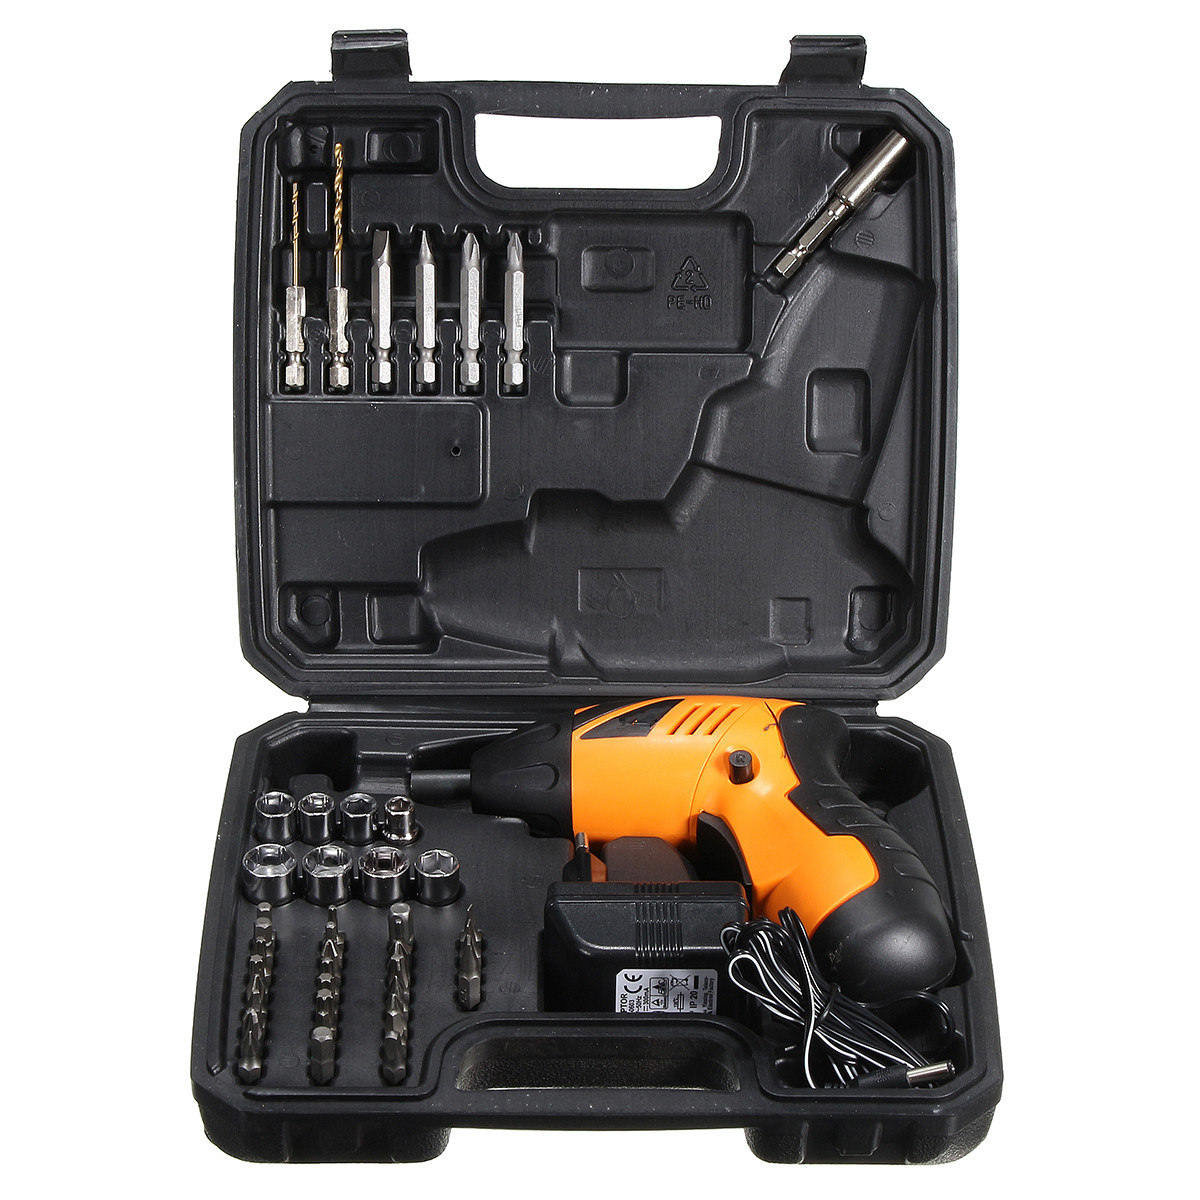 45 in 1 Electric Cordless Screwdriver Drill Power Tool Rechargeable Fold Driver With Plastic Box Package Drill Set 4 8vlithium battery 2 torque electric drill bit cordless electric screwdriver hand wrench with plastic case carry tool box set